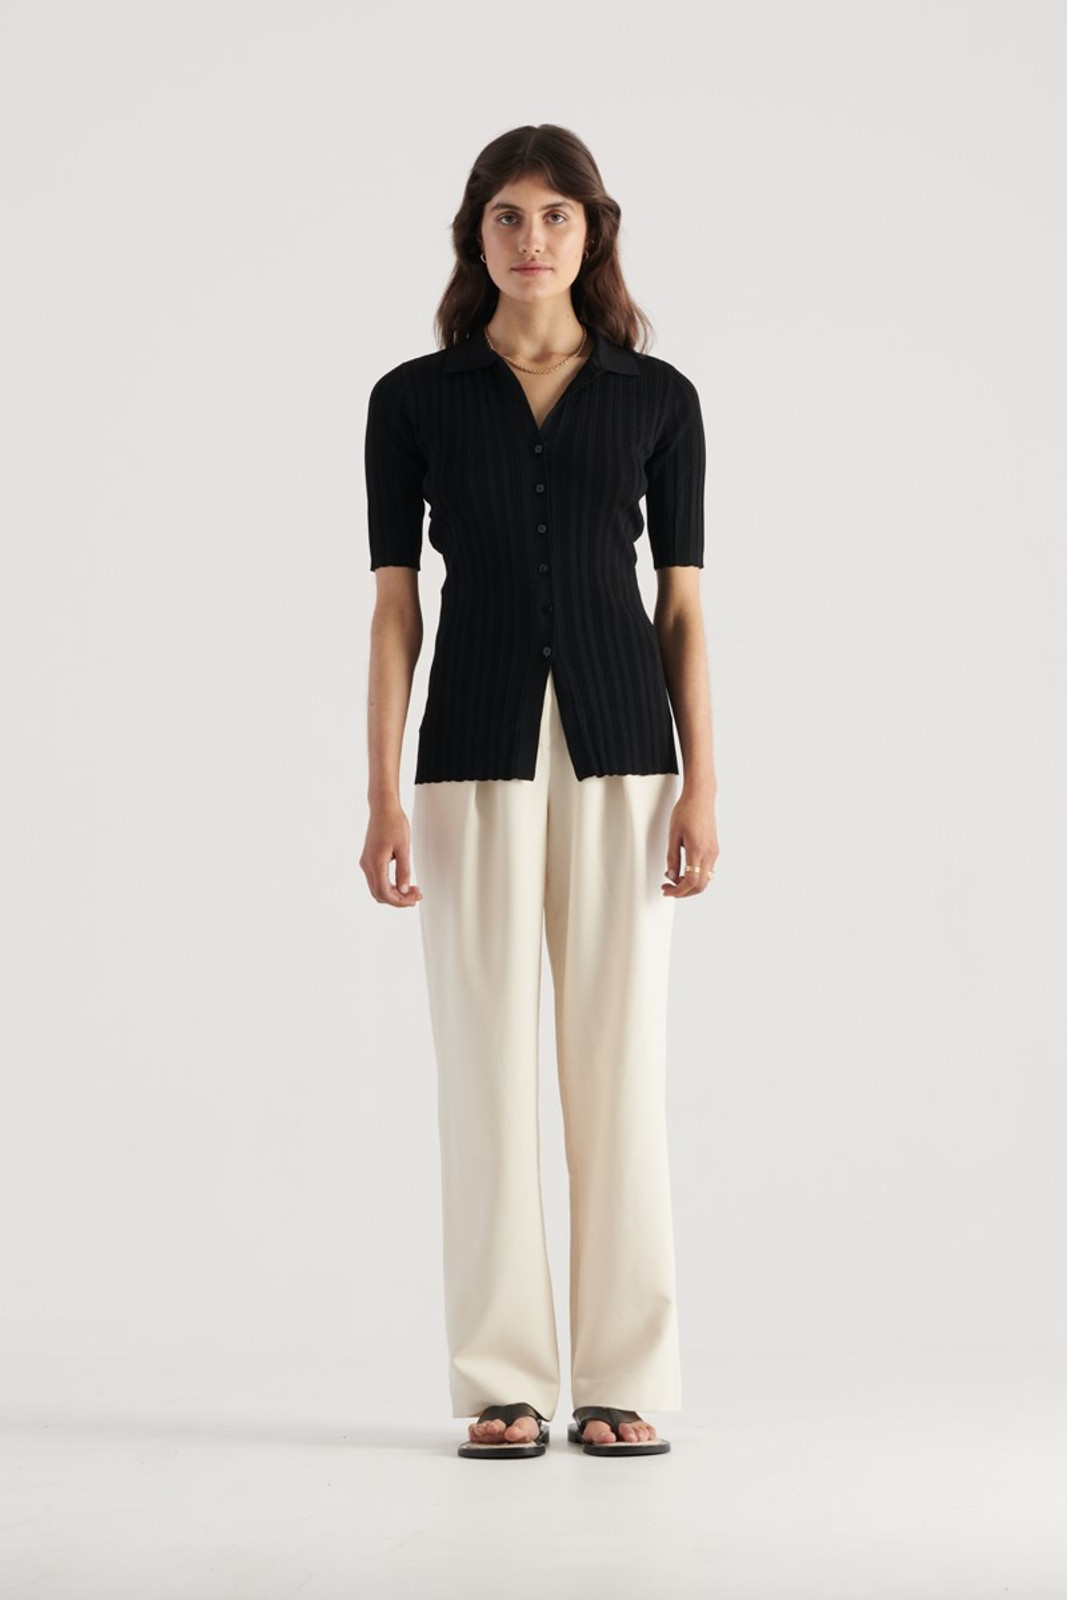 Elka Collective WOMENS Black Melody Knit 2